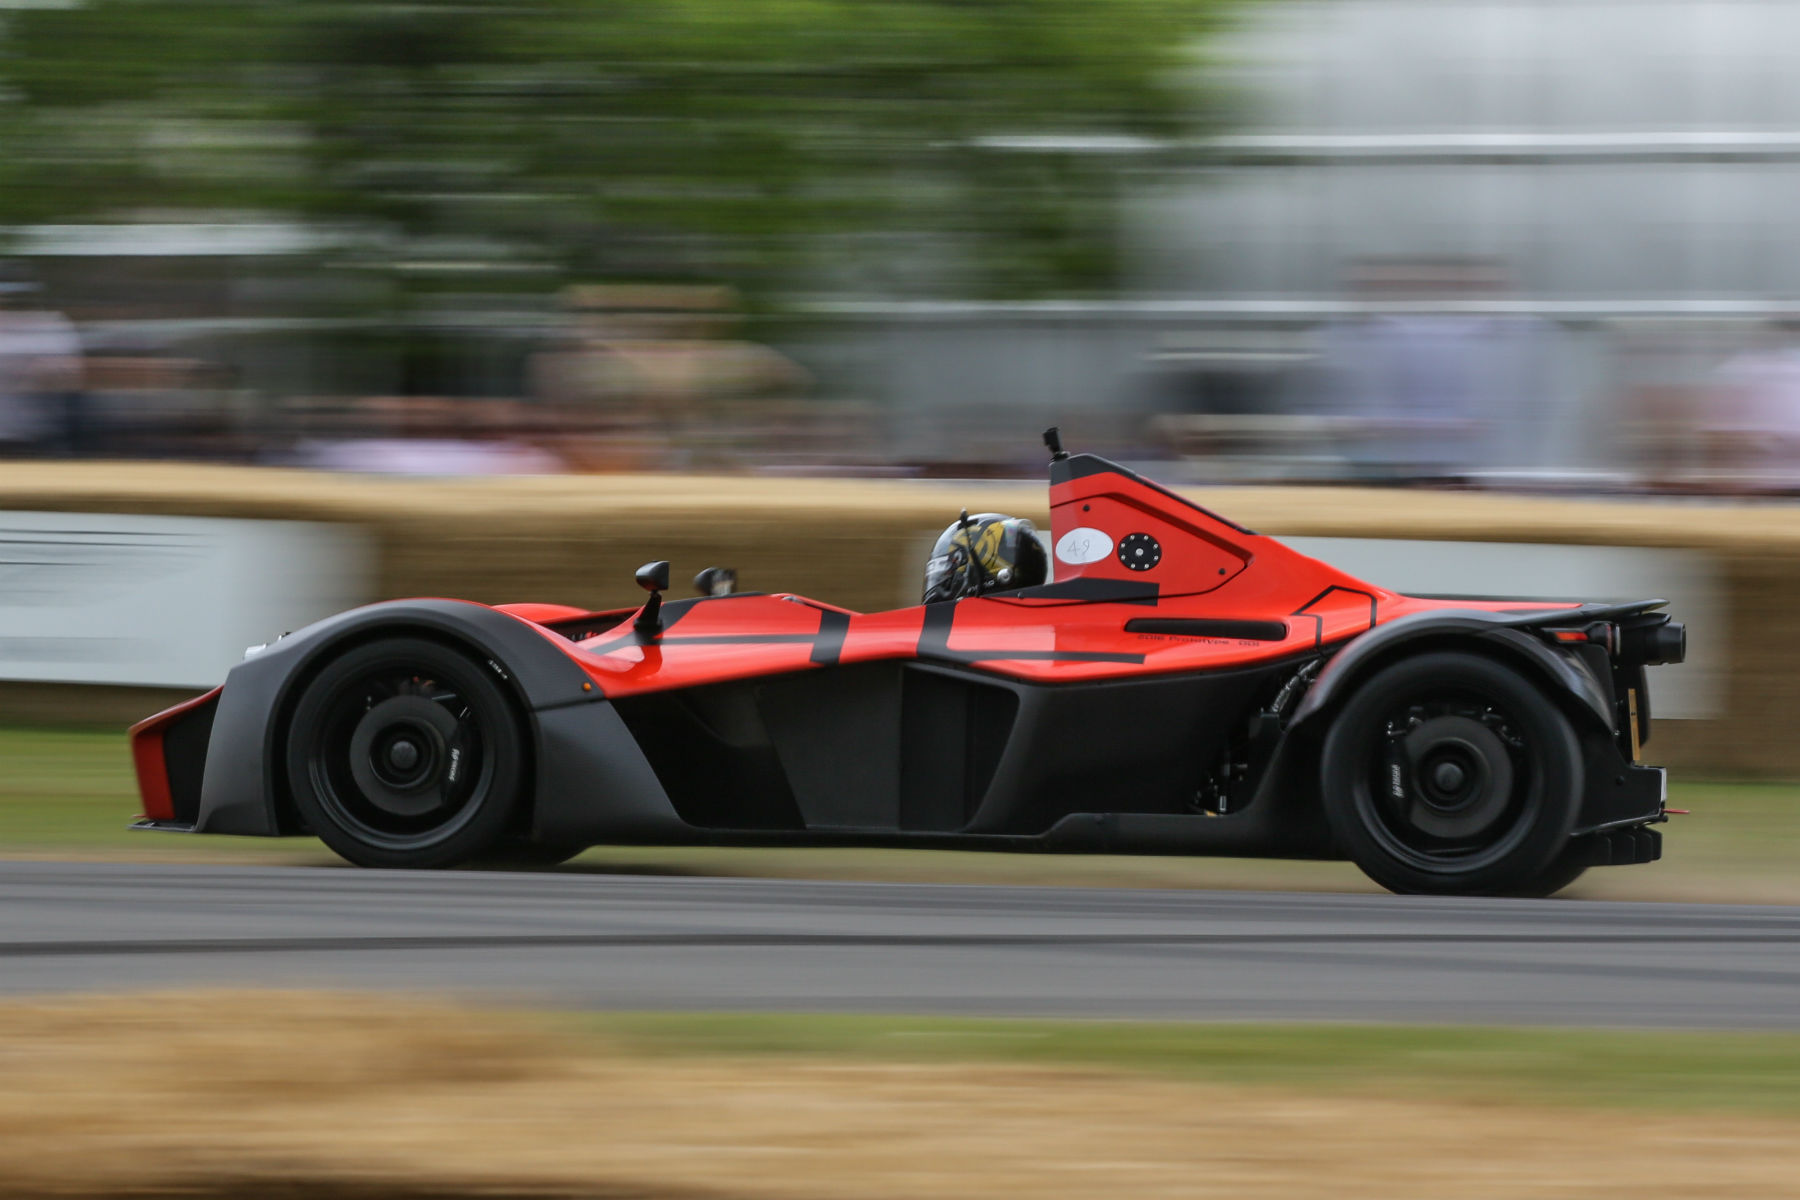 BAC Mono packs more power - accidentally breaks Goodwood hillclimb record